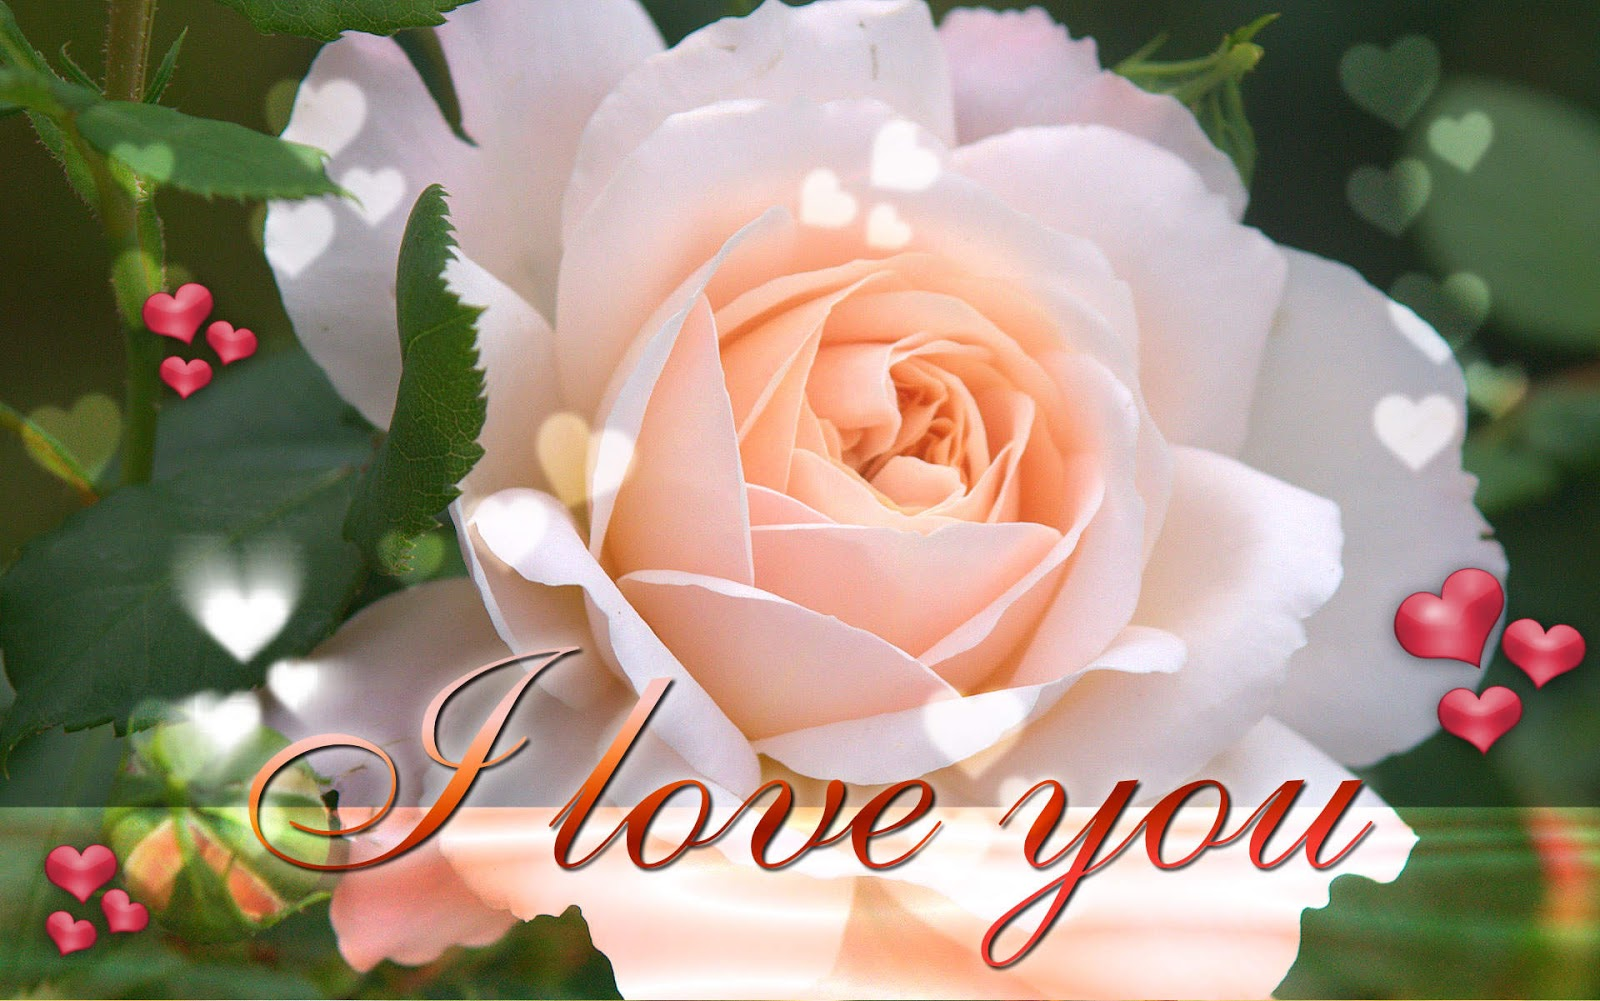 New Latest i love you wallpapers on this valentines day 2016